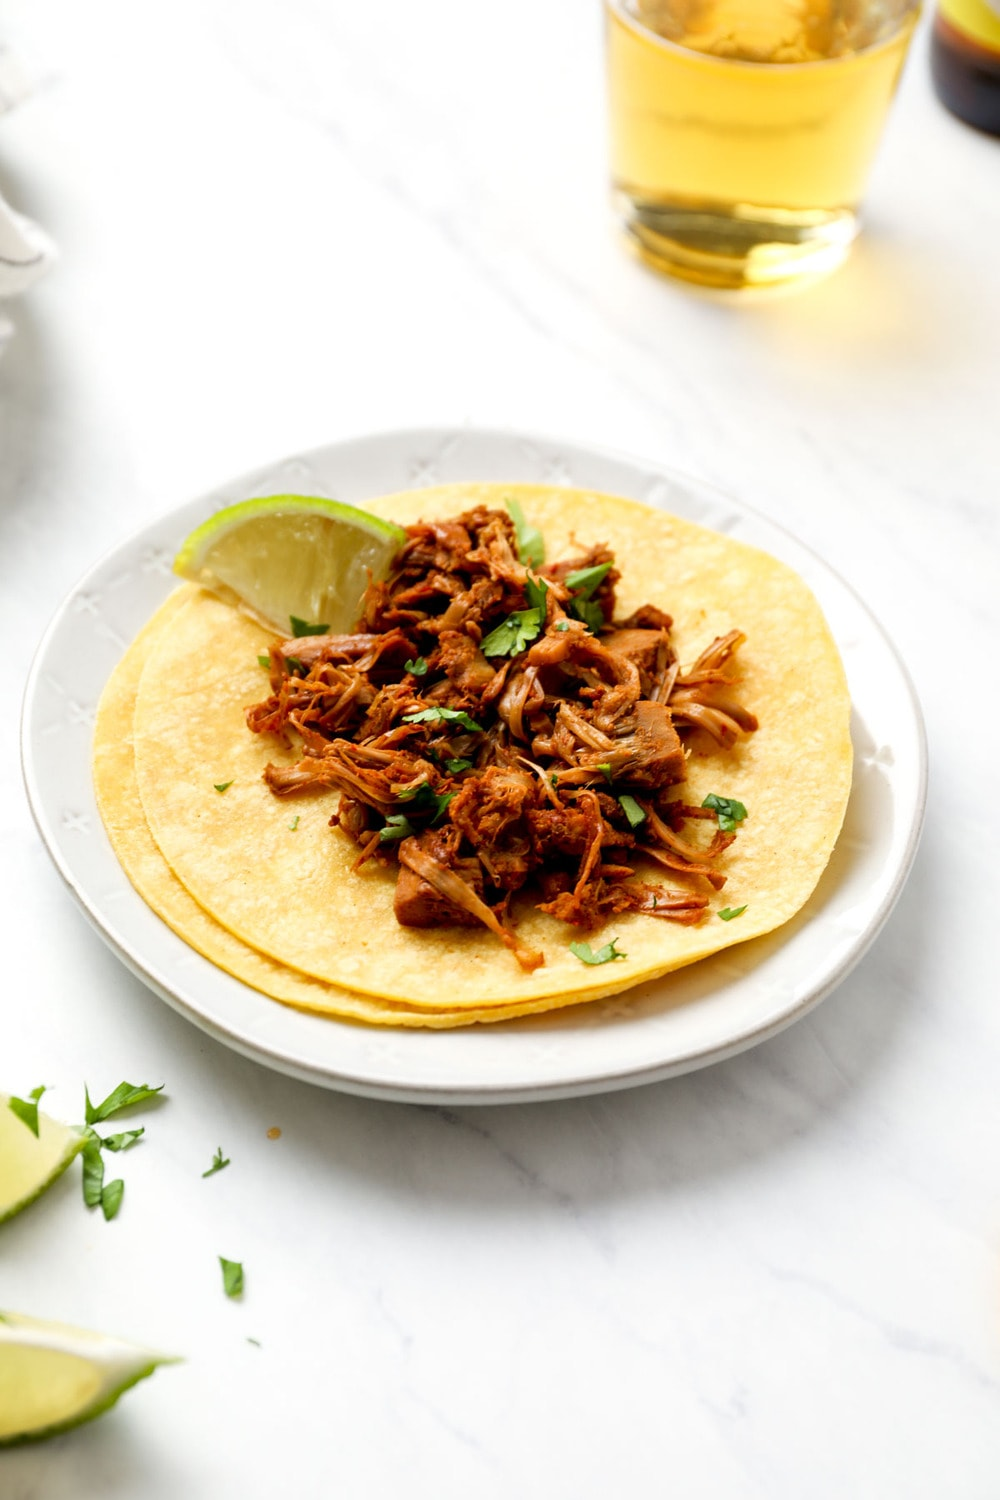 Beer Braised Jackfruit Tacos in corn tortillas with lime.